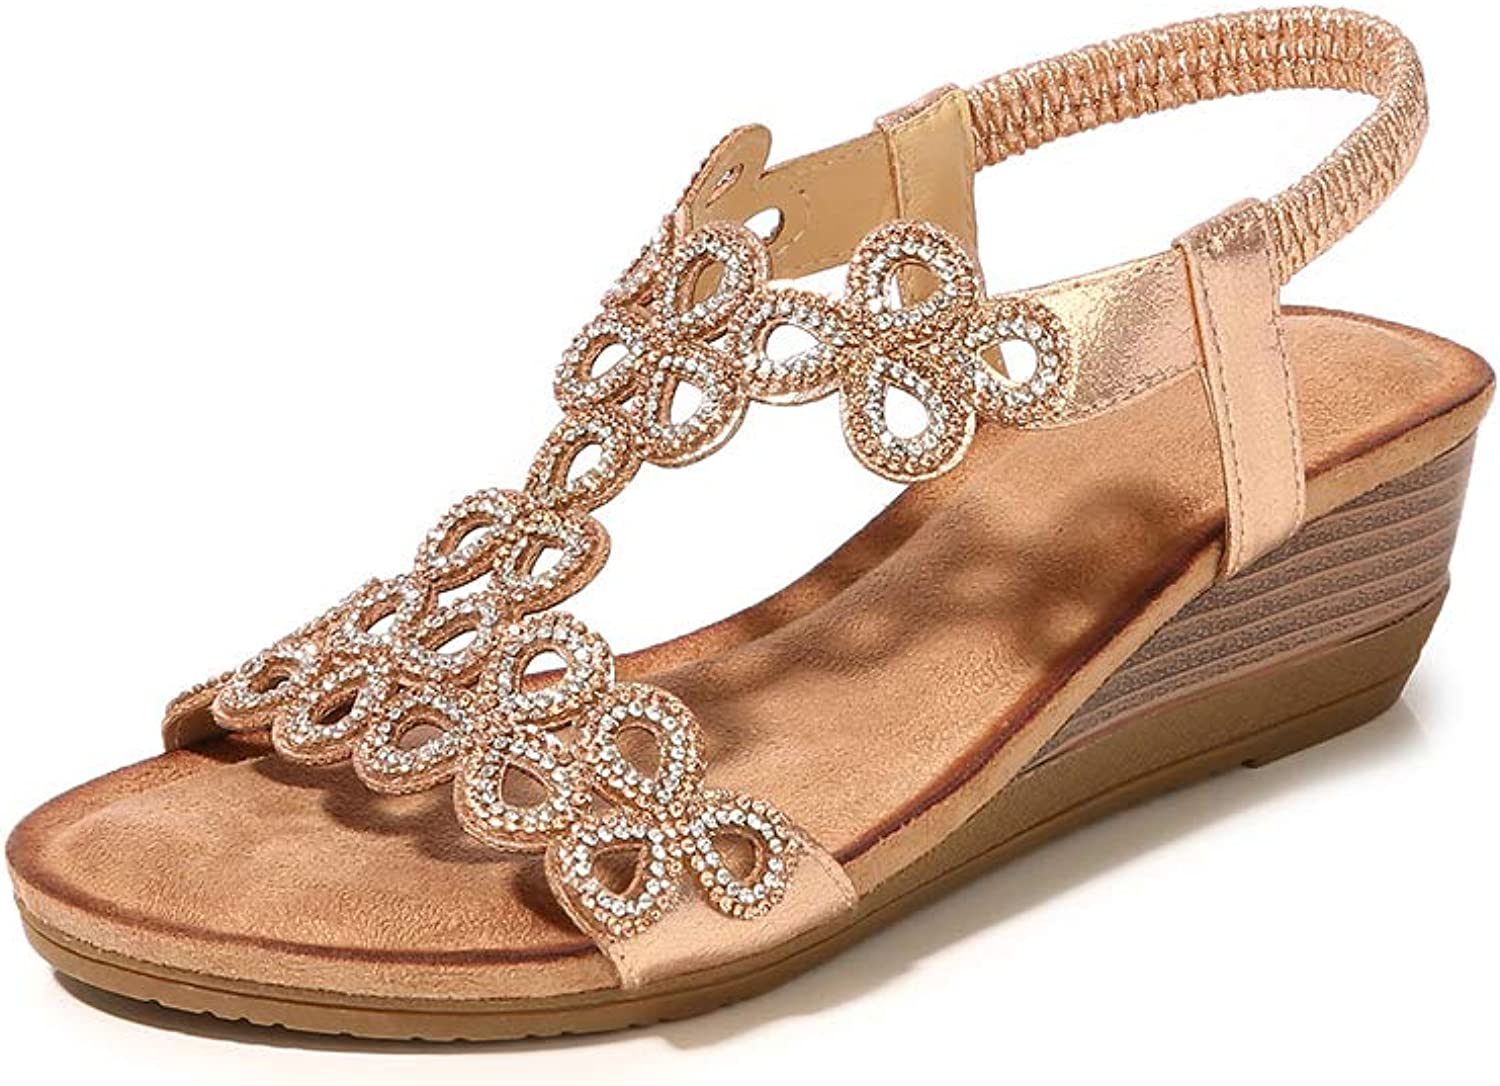 Mekidy Beaded Jeweled Leather Wedge Sandles Women's Sandals